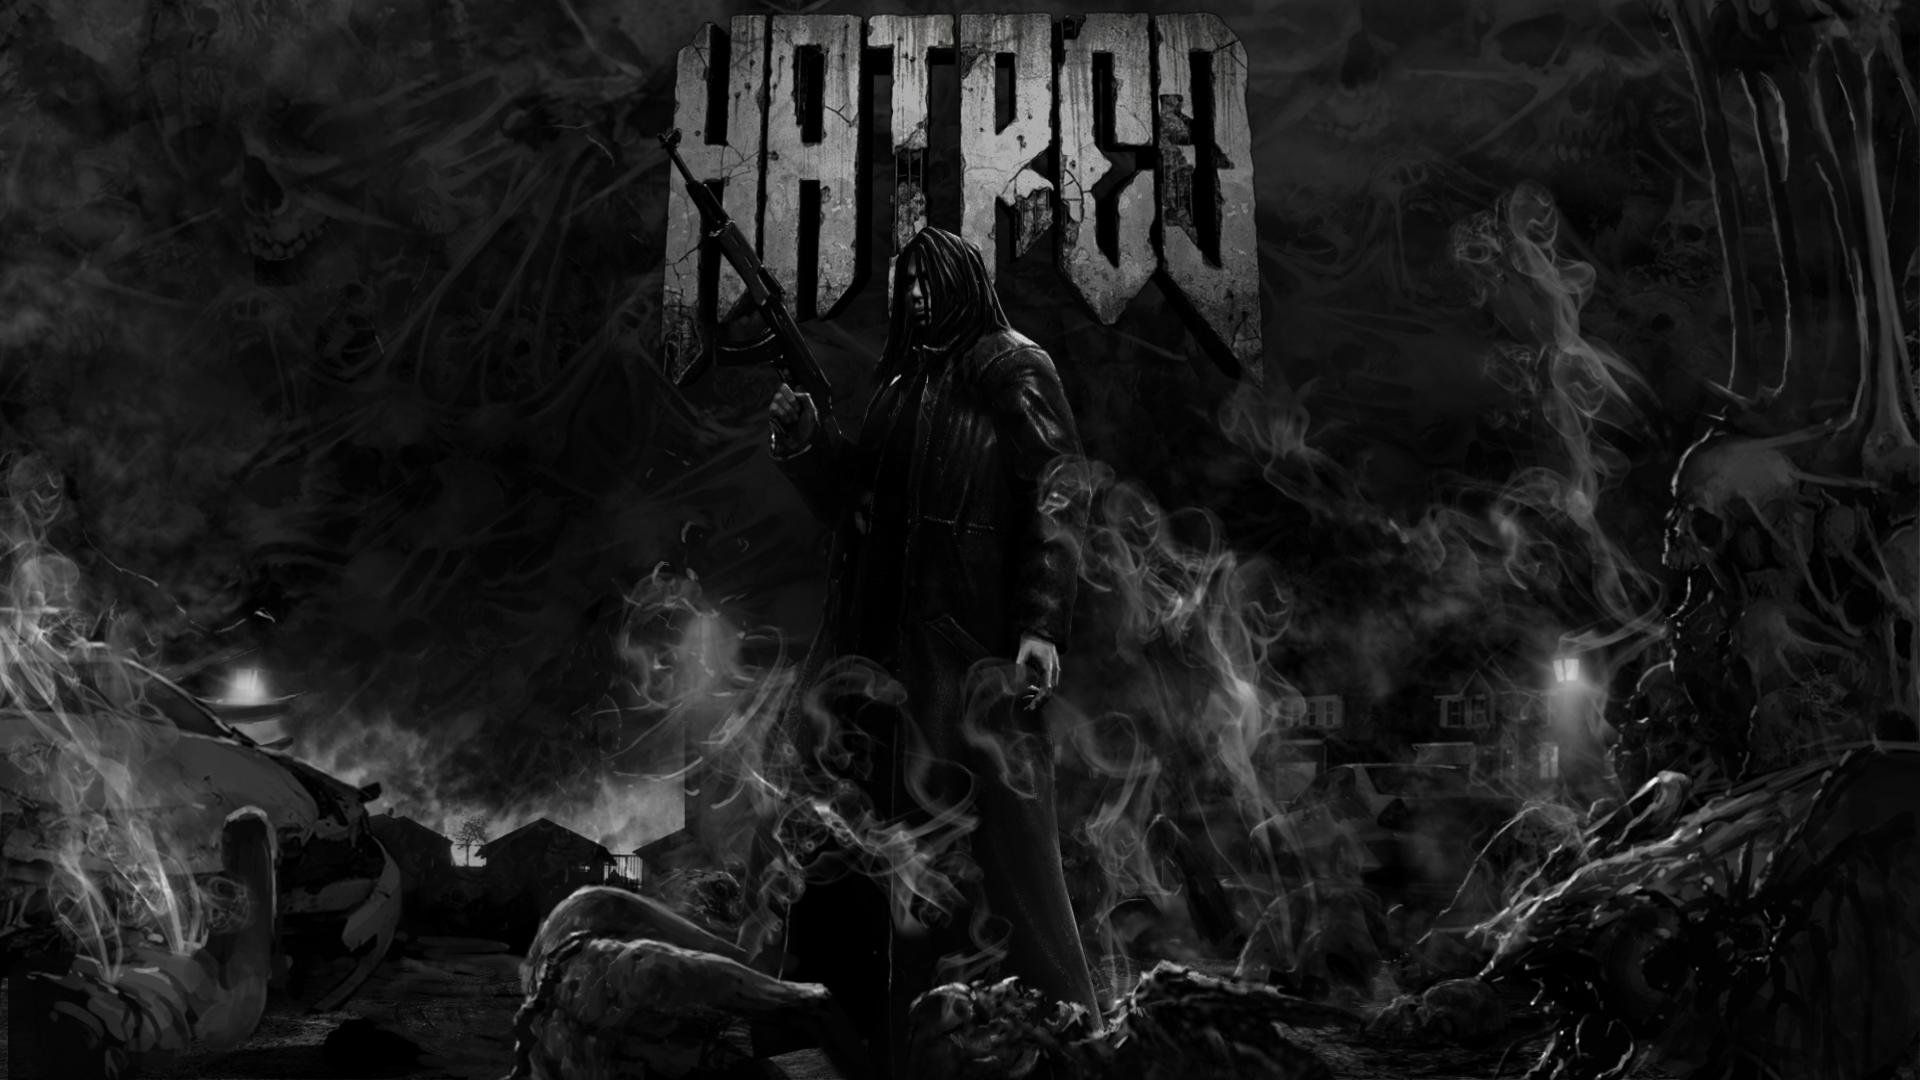 Hatred wallpapers 1920x1080 Full HD 1080p desktop backgrounds 1920x1080